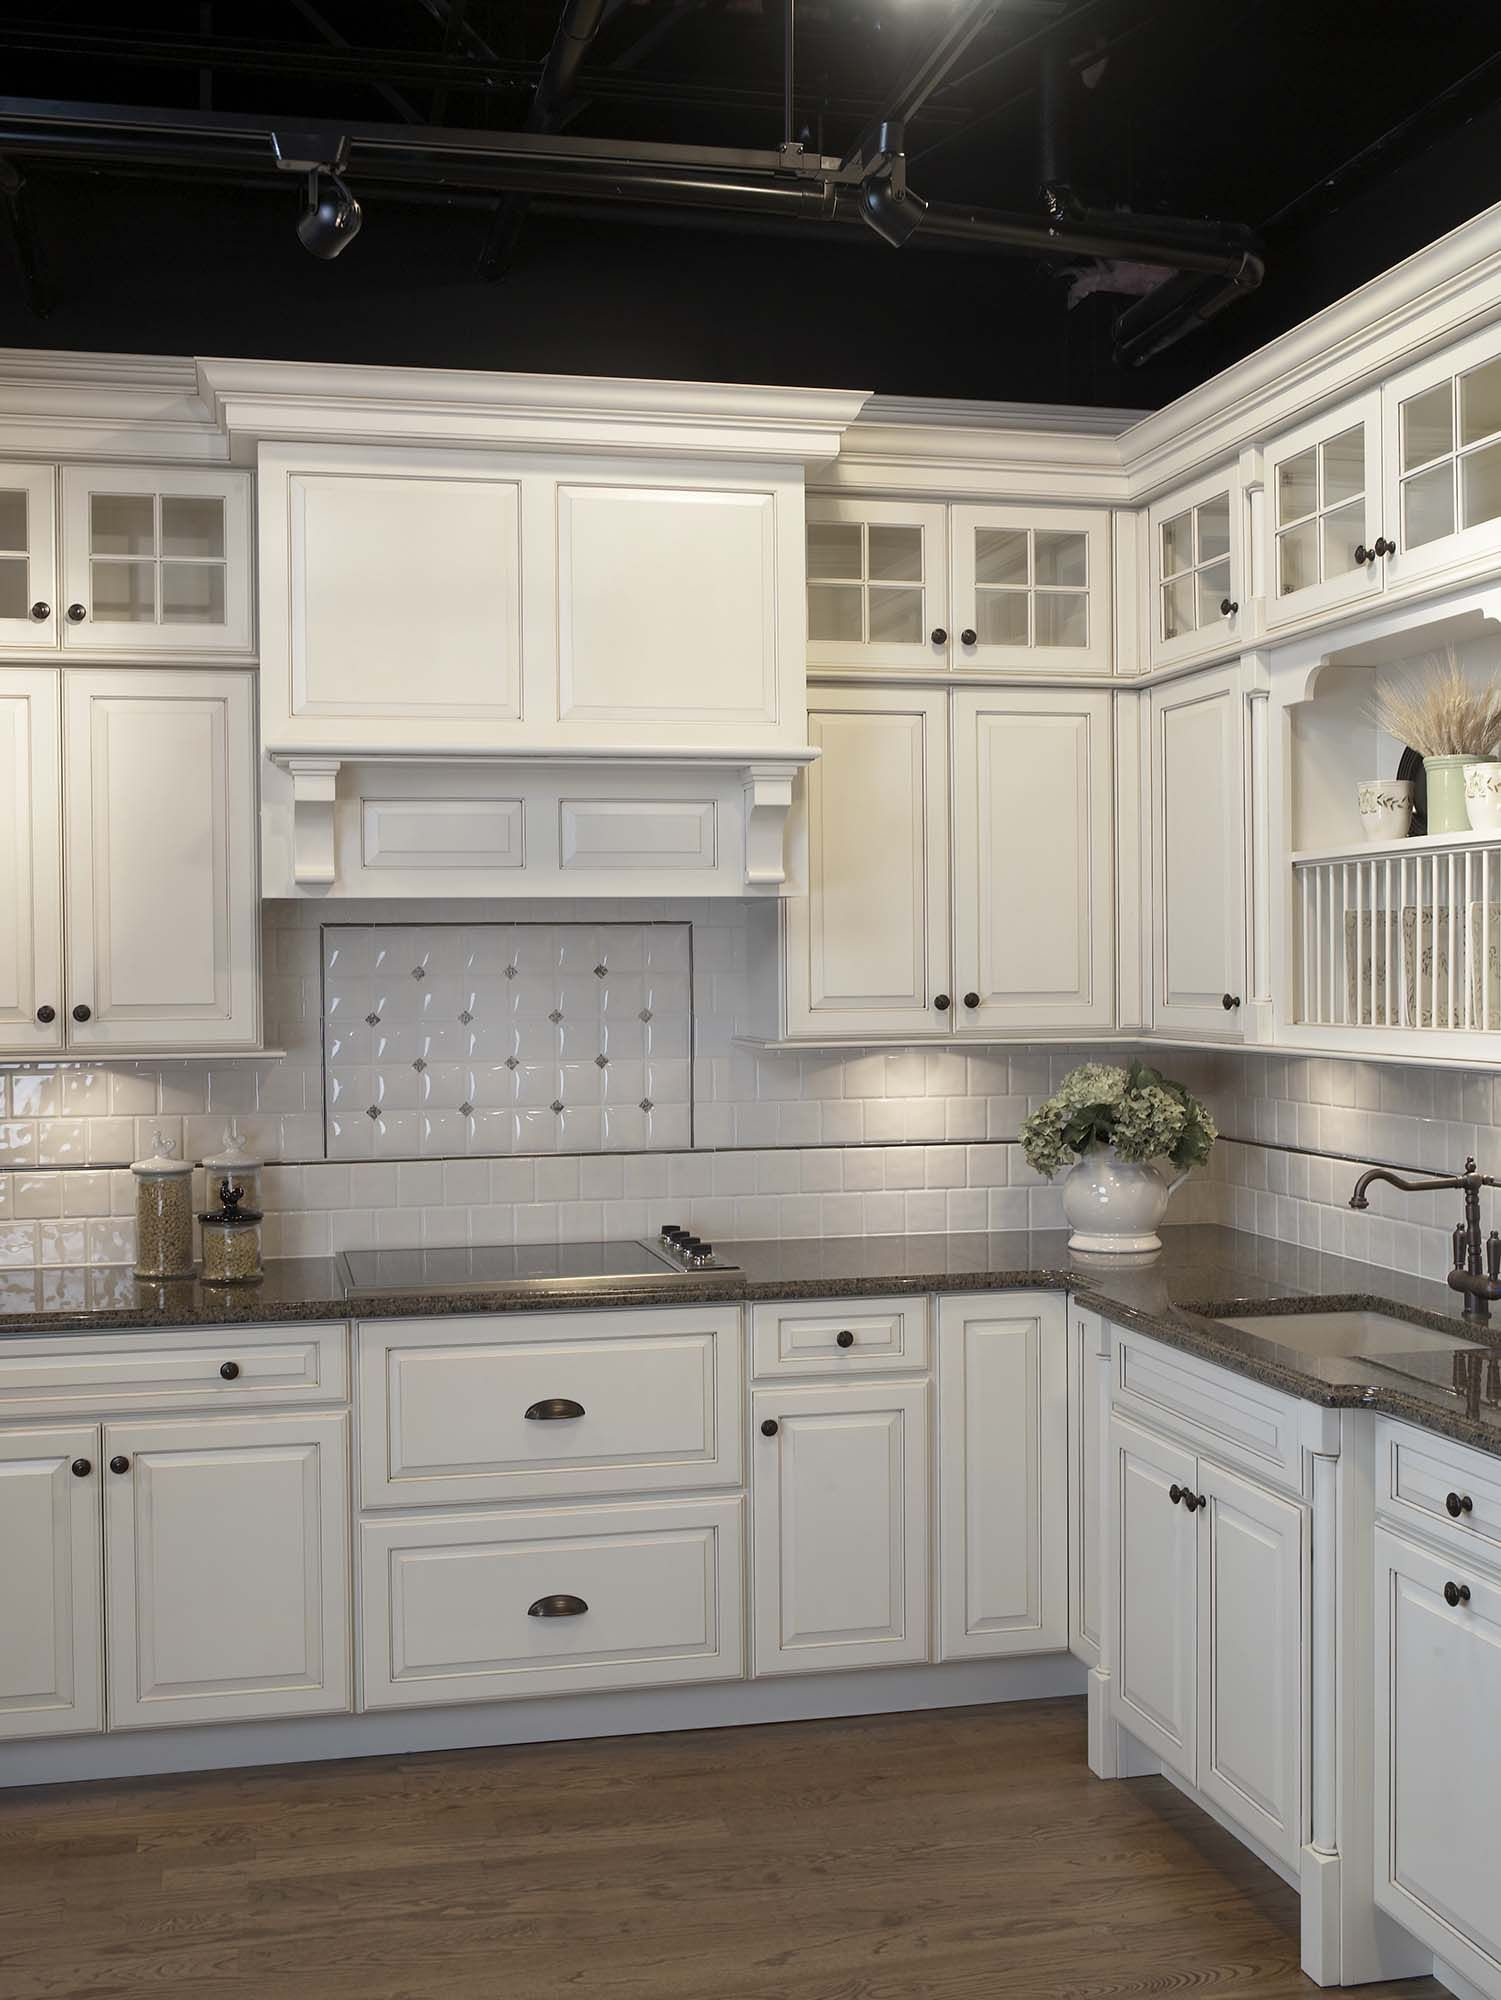 Knobs kitchen gallery pinterest photo galleries tops and knobs - Top Knobs Is The Manufacturer Of Decorative Kitchen And Bath Hardware Get Free Samples Of Our Cabinet Hardware Our Knobs And Handle Pull Collections Are